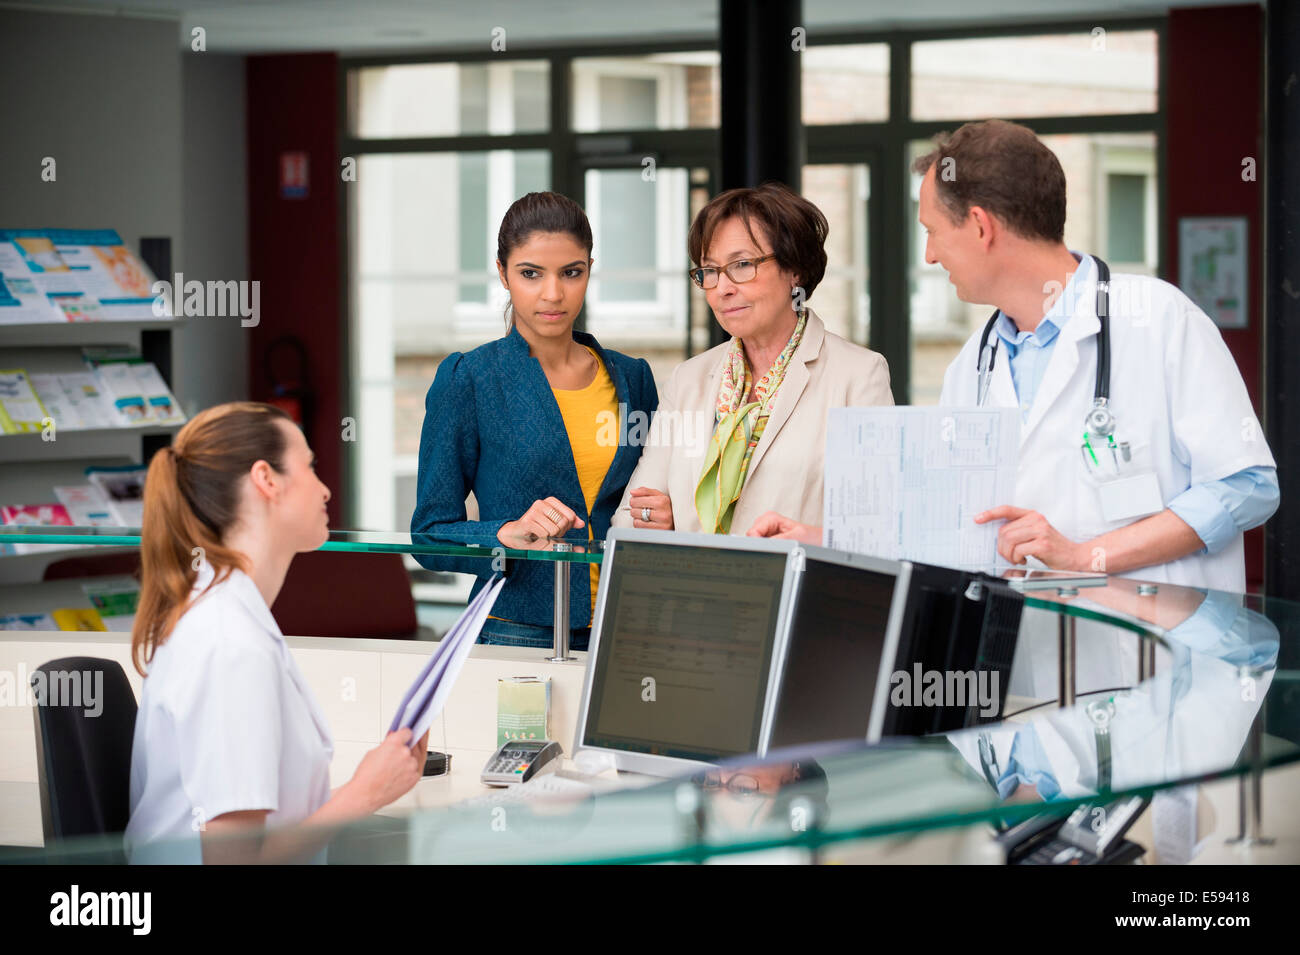 patients discussing with receptionist at hospital reception desk stock image